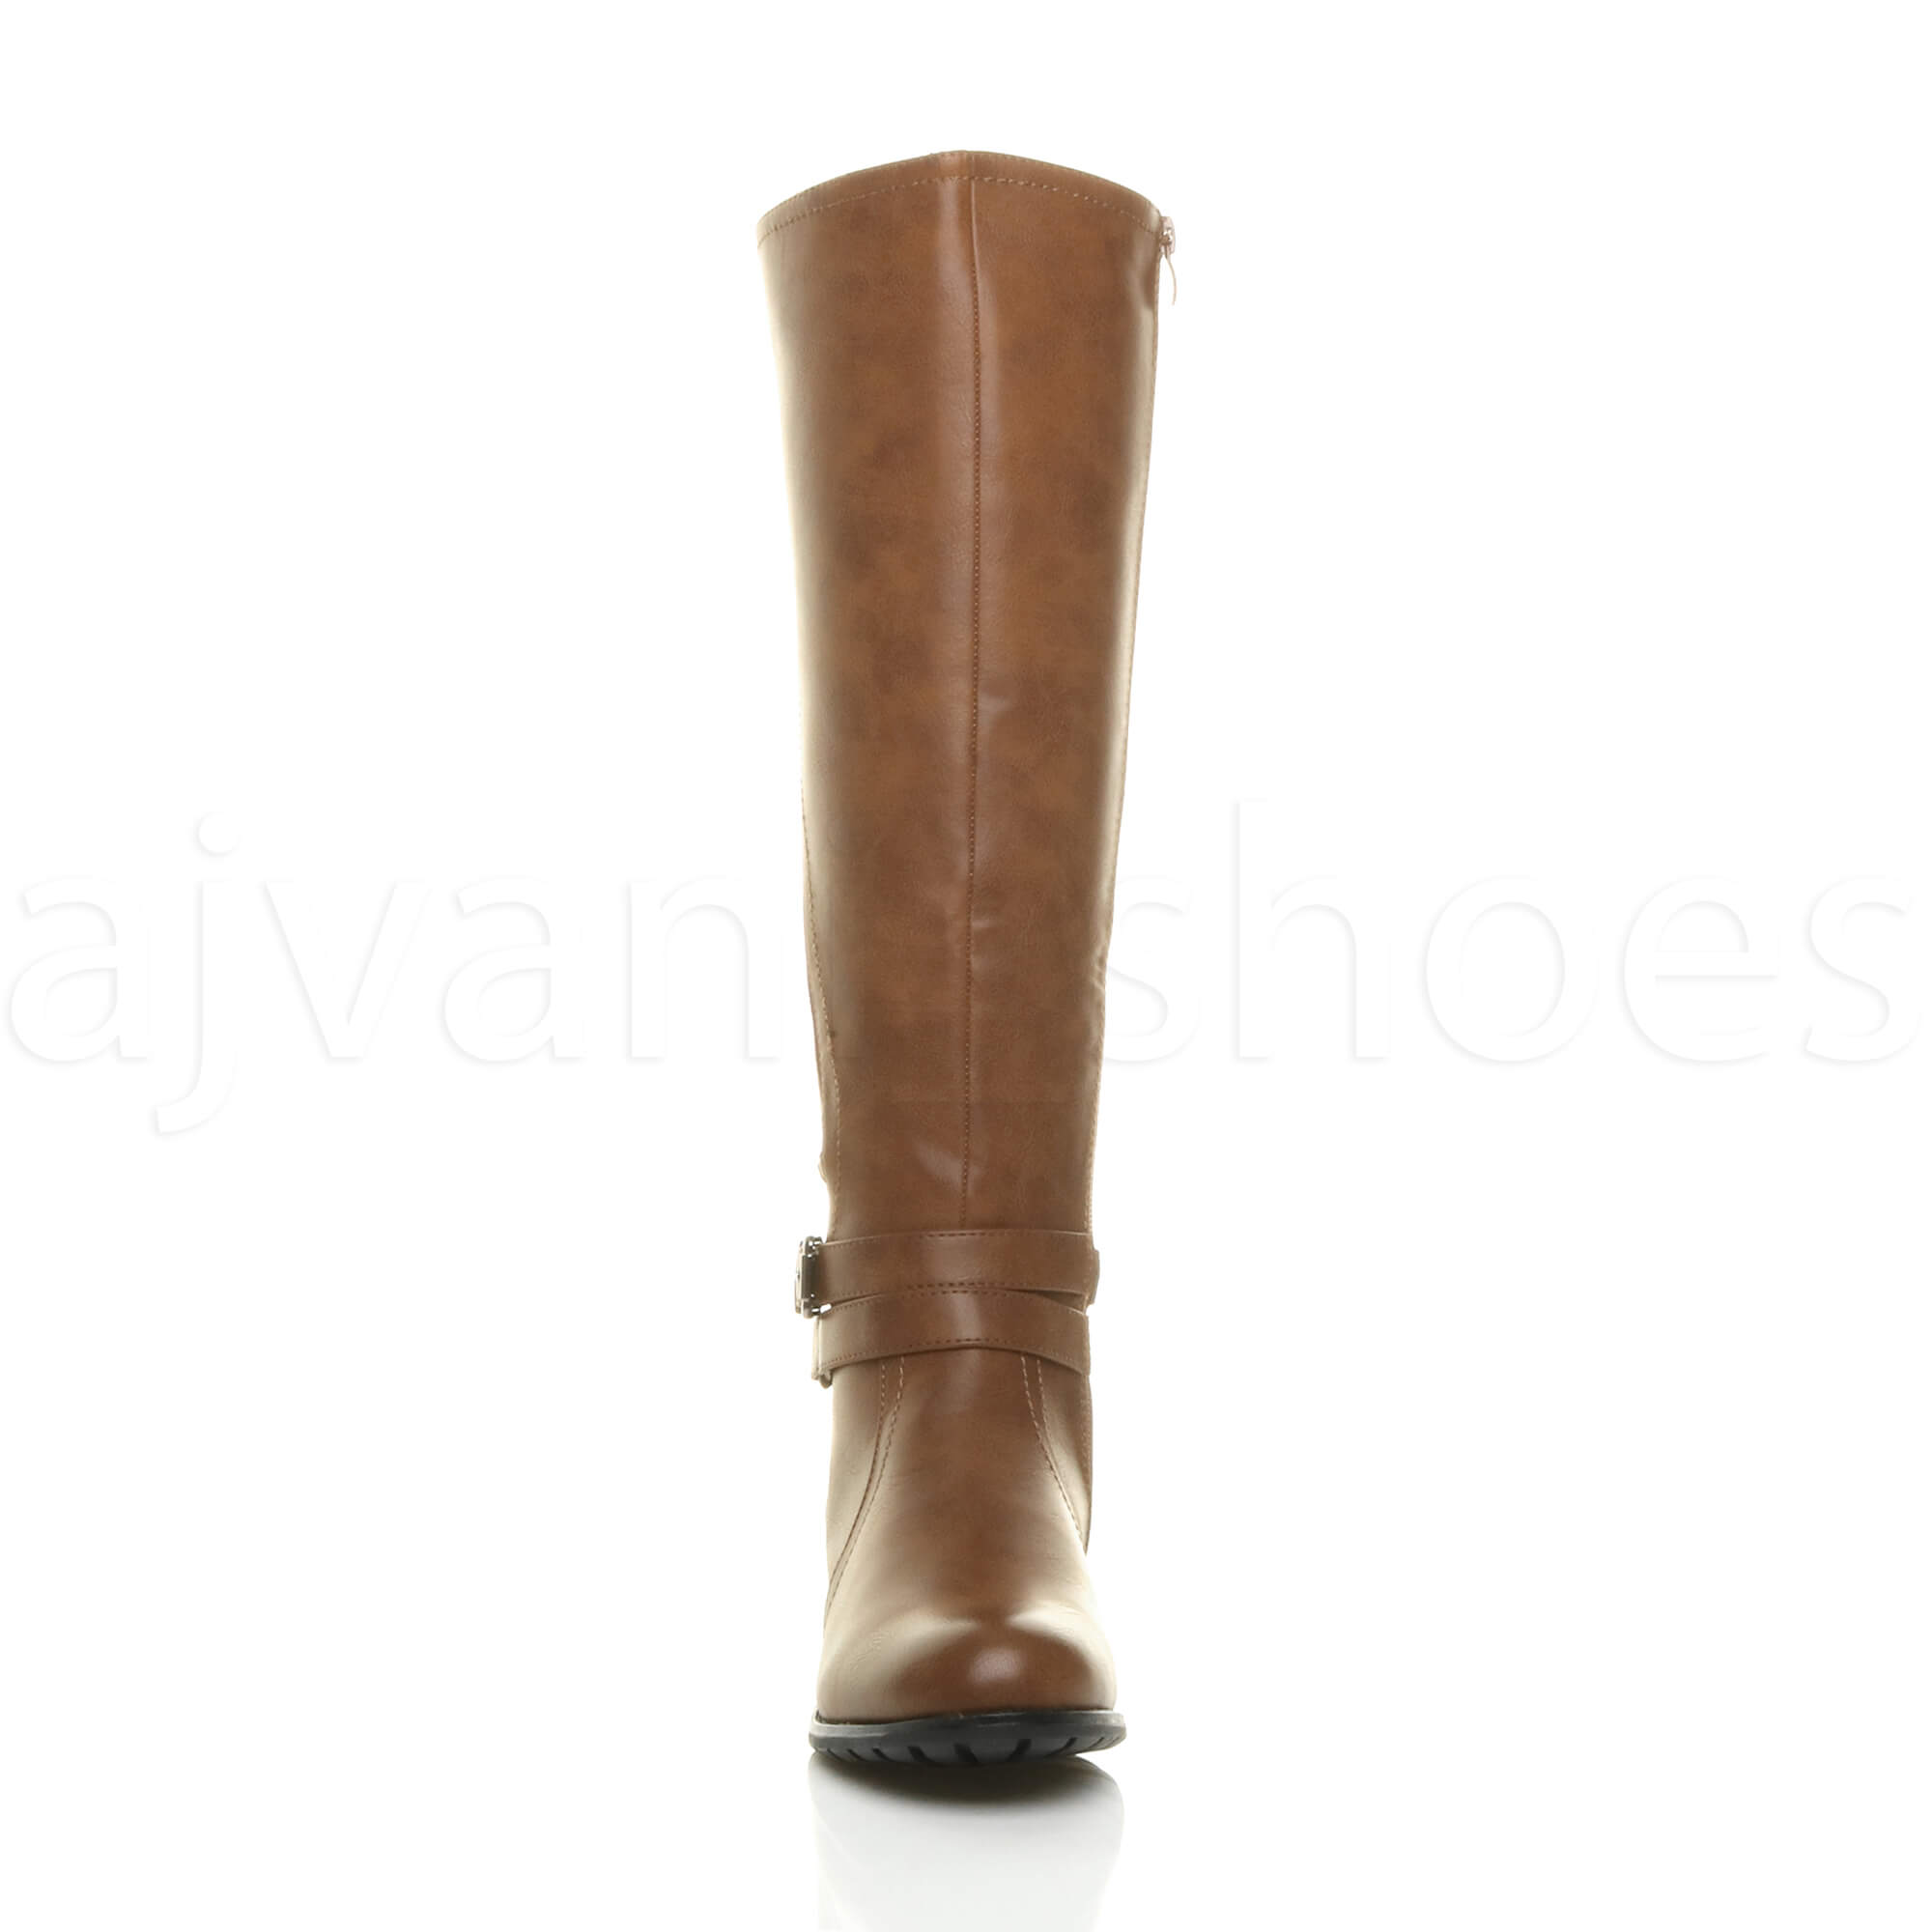 WOMENS-LADIES-LOW-HEEL-STRAP-ZIP-STRETCH-ELASTIC-KNEE-HIGH-RIDING-BOOTS-SIZE